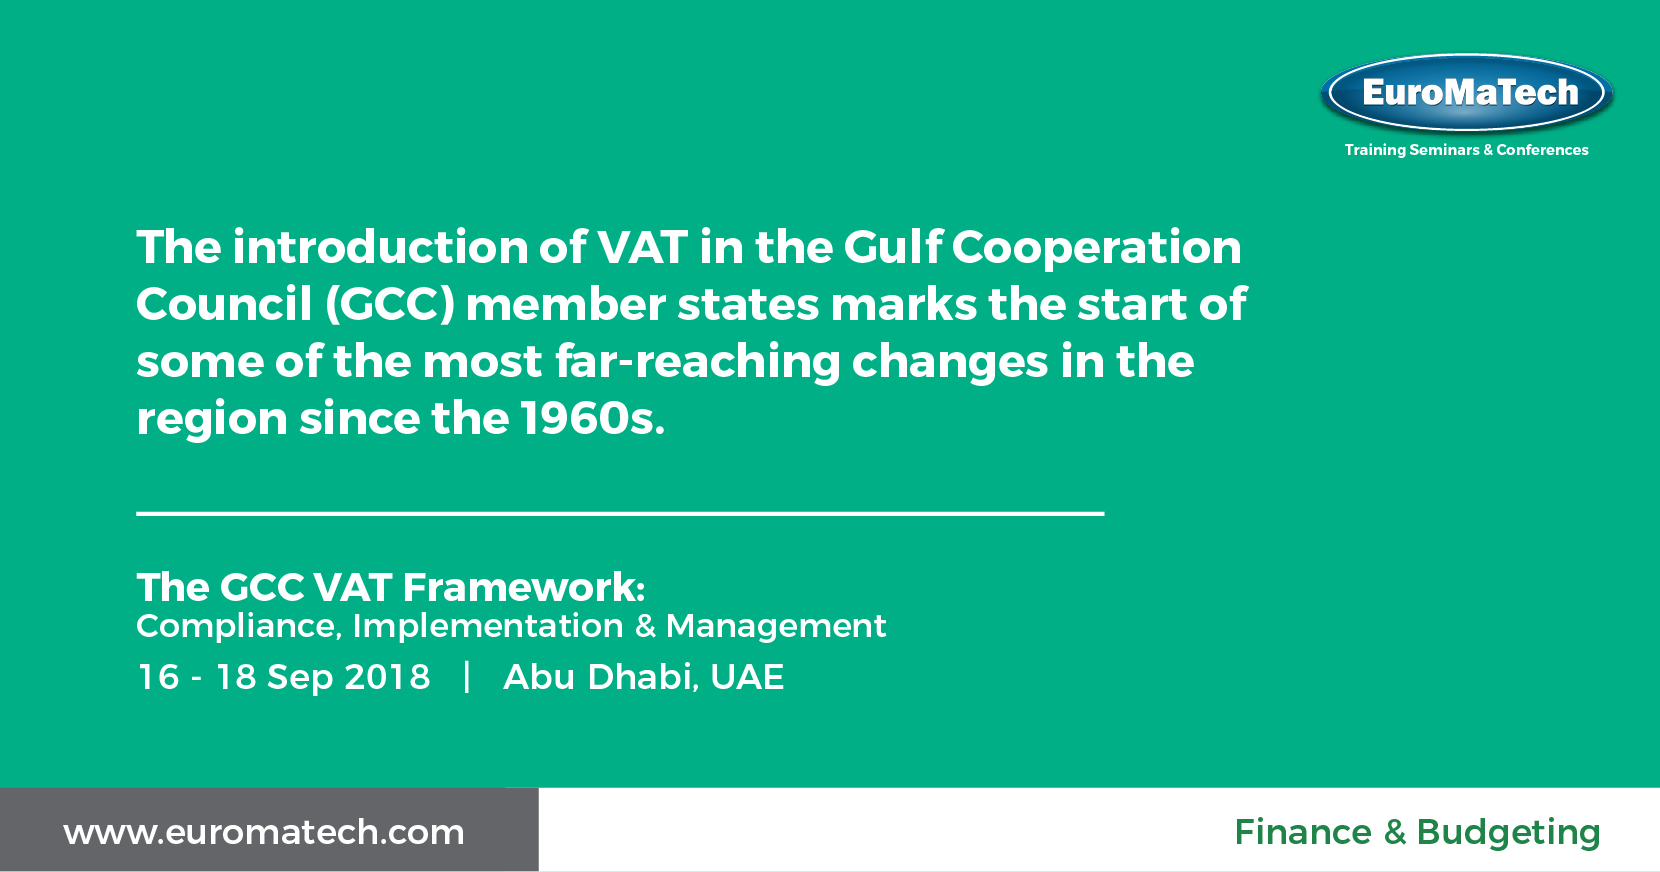 The GCC VAT Framework Training Course